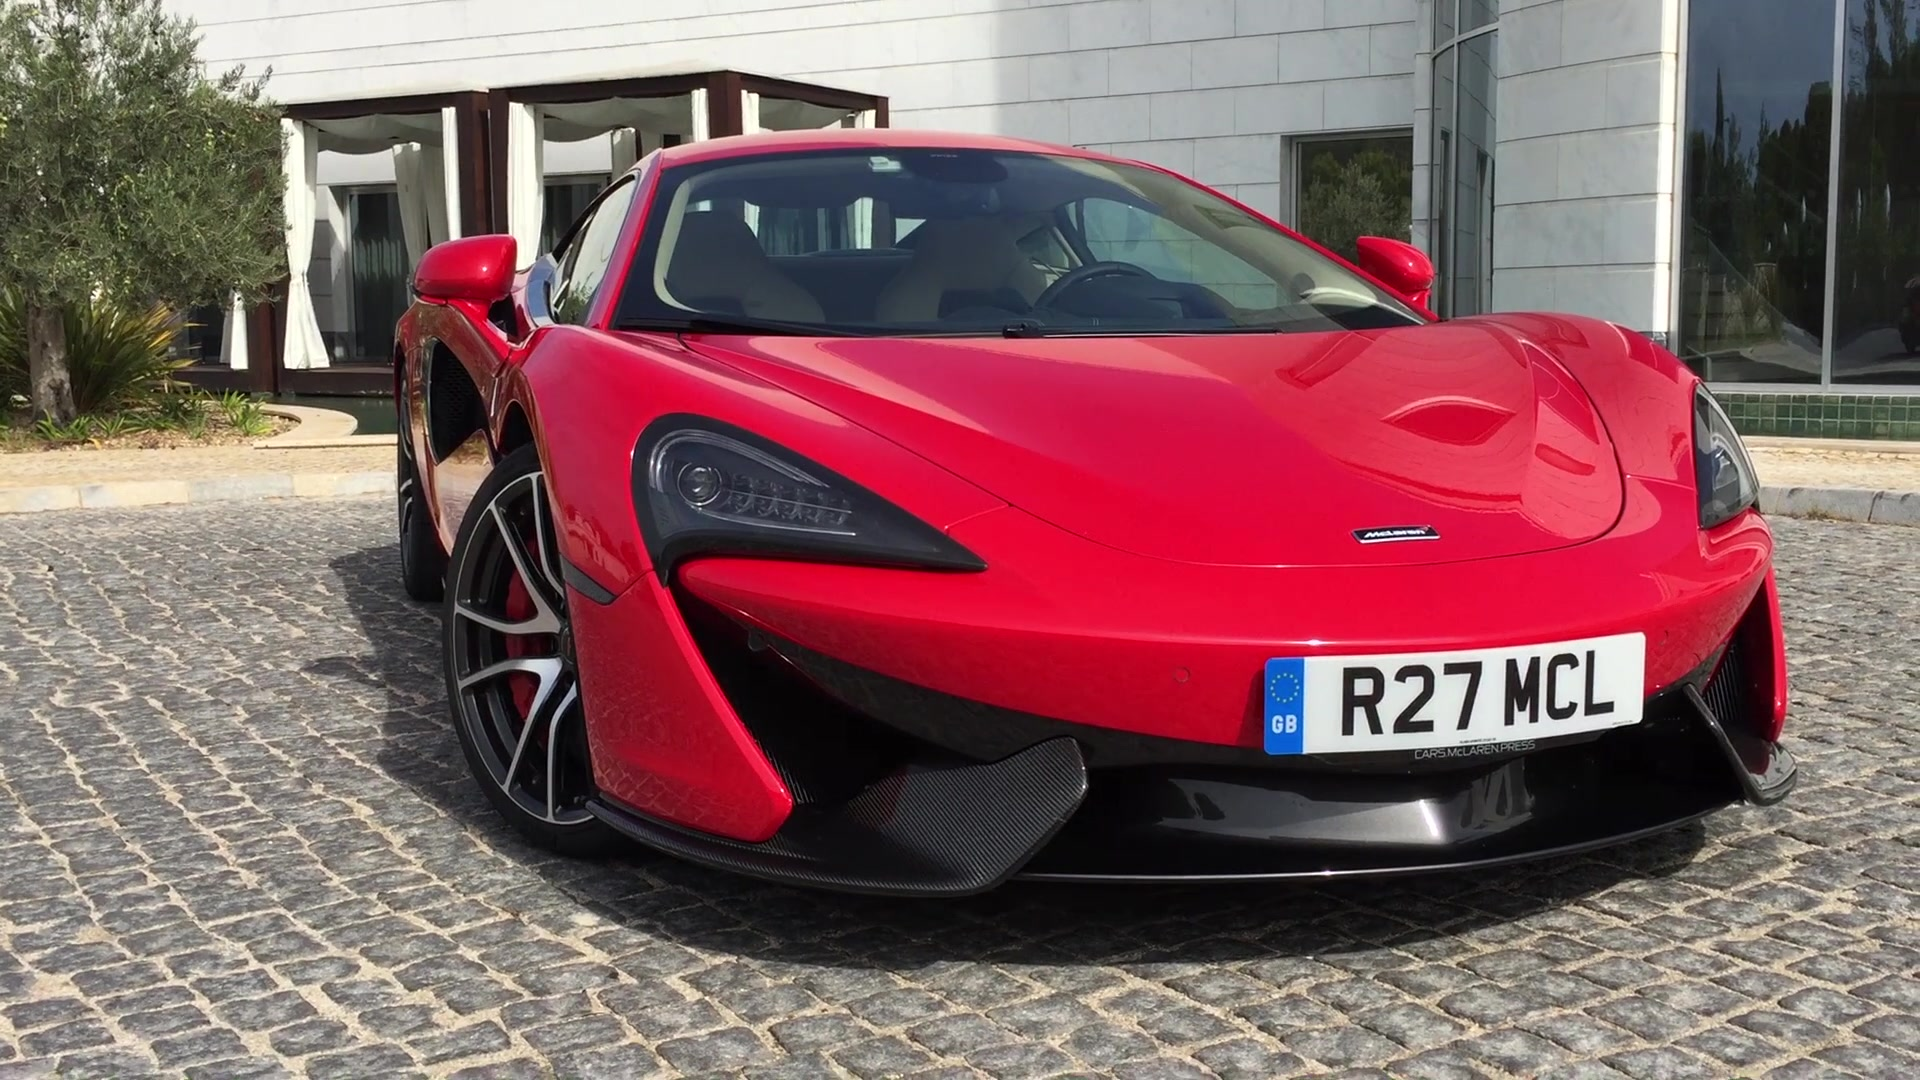 2016 McLaren 570S Coupe | Daily Driver